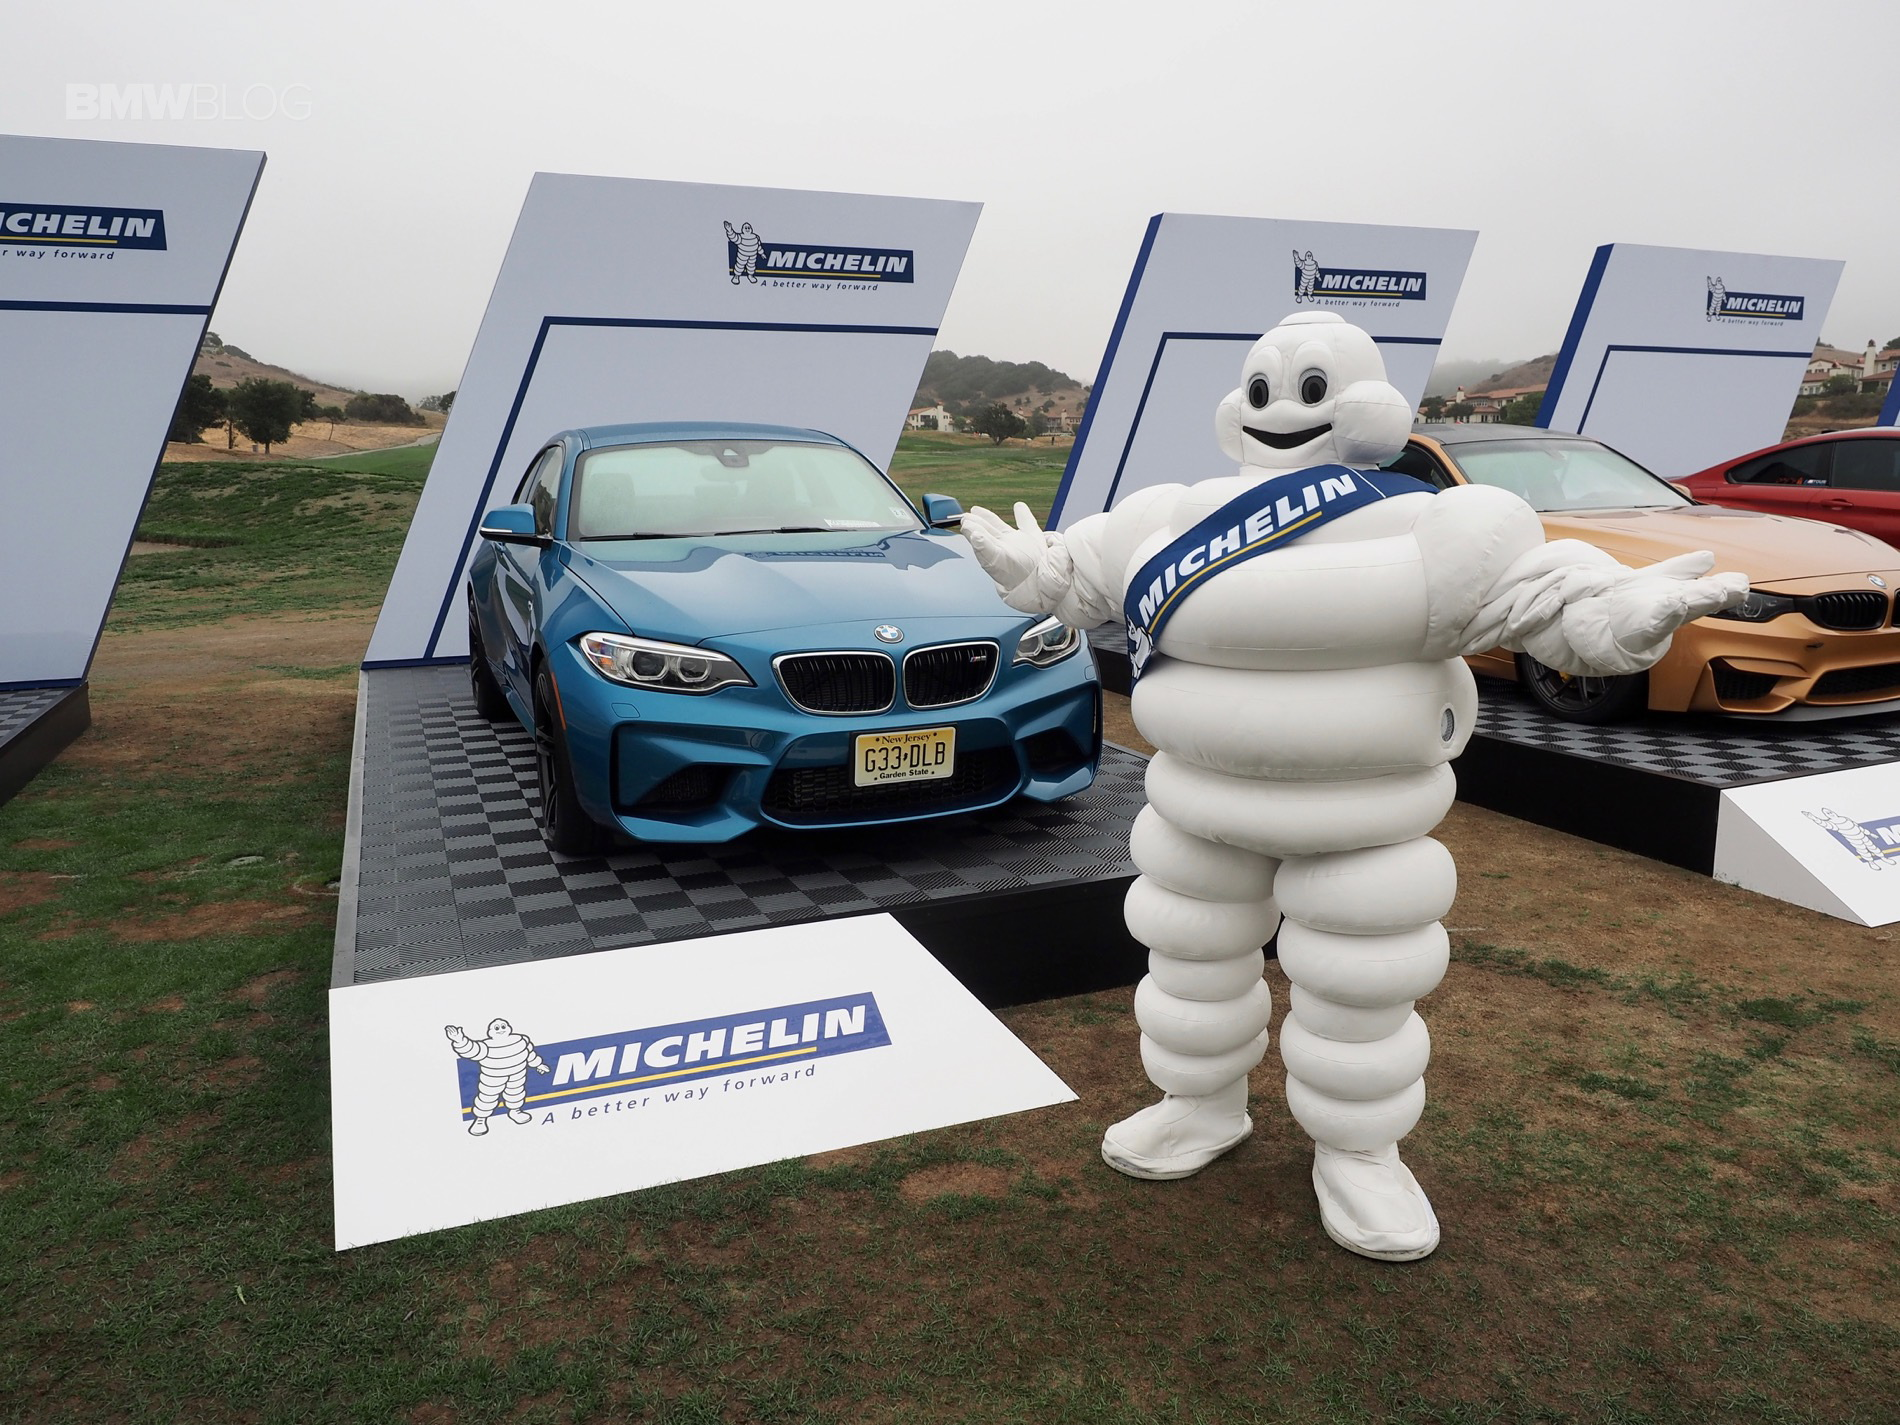 Michelin Legends of the autobahn 24